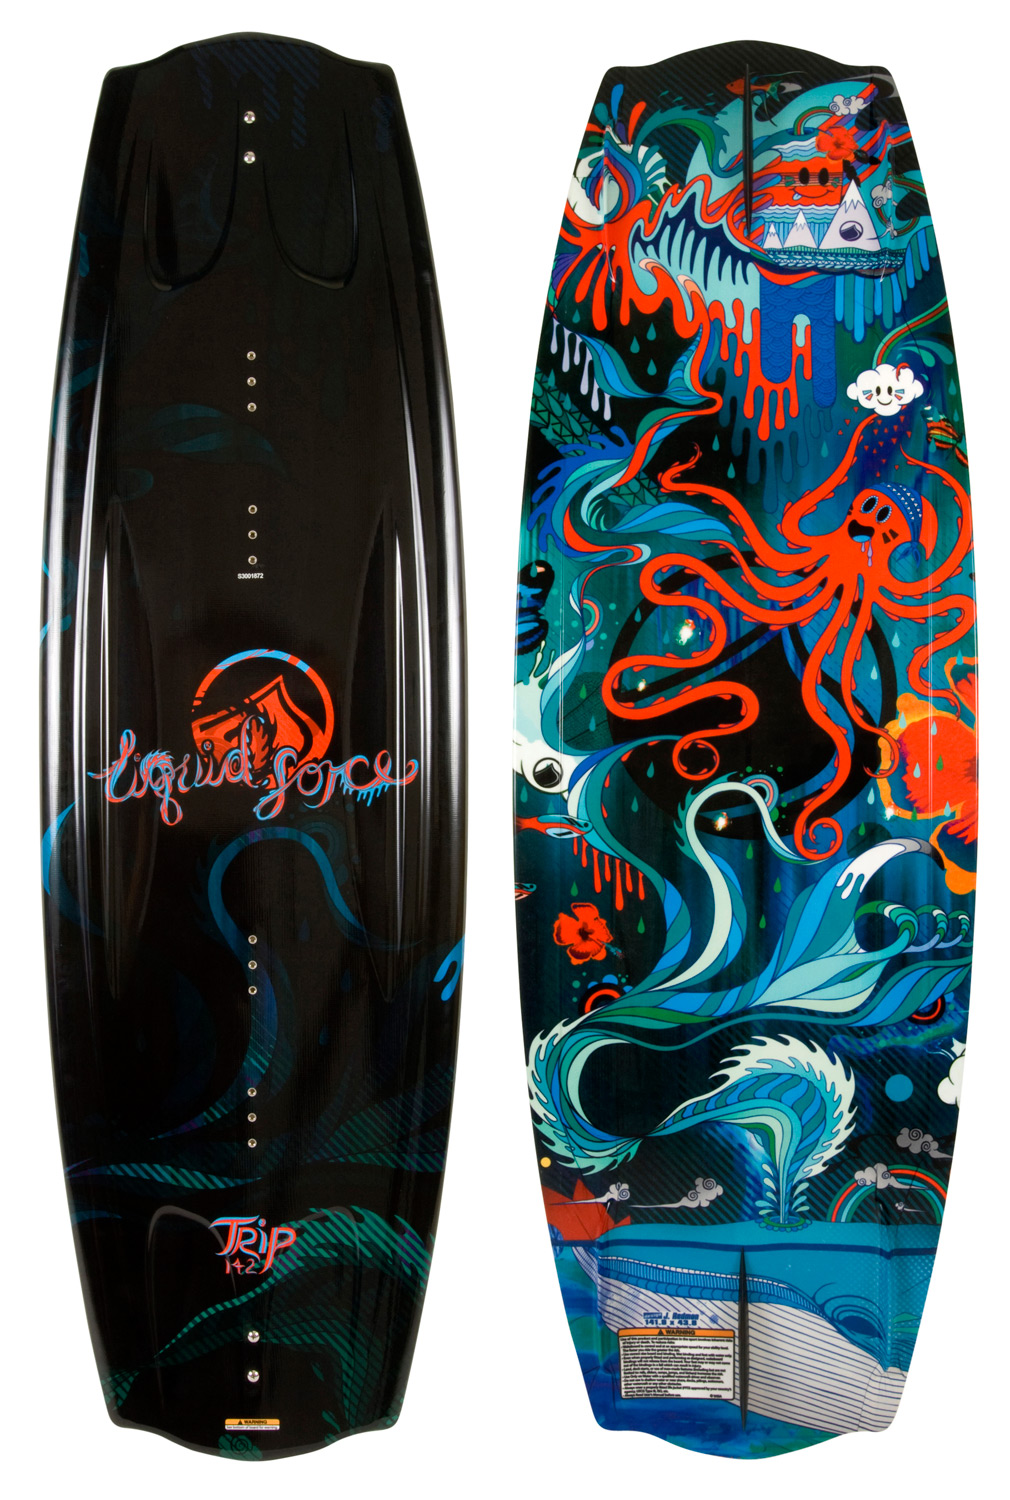 Wake The Trip continues to be a top seller year after year... a true sign that it works perfectly! It's an amazing board for any level rider because it's a consistent performer that is super smooth and forgiving, yet aggressive when pushed. A true industry classic that never gets old, many top LF riders got to where they are today by riding the Trip. Maximize your fun and value with the Trip!Key Features of the Liquid Force Trip Wakeboard: Aggressive, Continuous rocker: Smooth, fluid carves with a high arcing pop.: D-I-S-C Hull through the Center: Double – Inside – Single – Concave. Softens landings and maintains board speed.: Variable Edge Rail: Rounded rail in the center for a forgiving feel, sharp rail at the tail for edge control and response.: Modern Bat Tail: Fuller than the original for more lift off the tail of the board and tucked in the tips for quick transitions.: Molded-in, Warped Long Based Side FinsWakeboard Binding CompatabilityCan accomodate bindings with a 6 inch binding plate found here. Can accommodate bindings with a 7 inch binding plate with the exception of the narrowest positioning found here.Can only accommodate a single mounting position option for Liquid Force bindings with a 8 inch binding plate and offers two positions for all other vendors found here. - $269.99